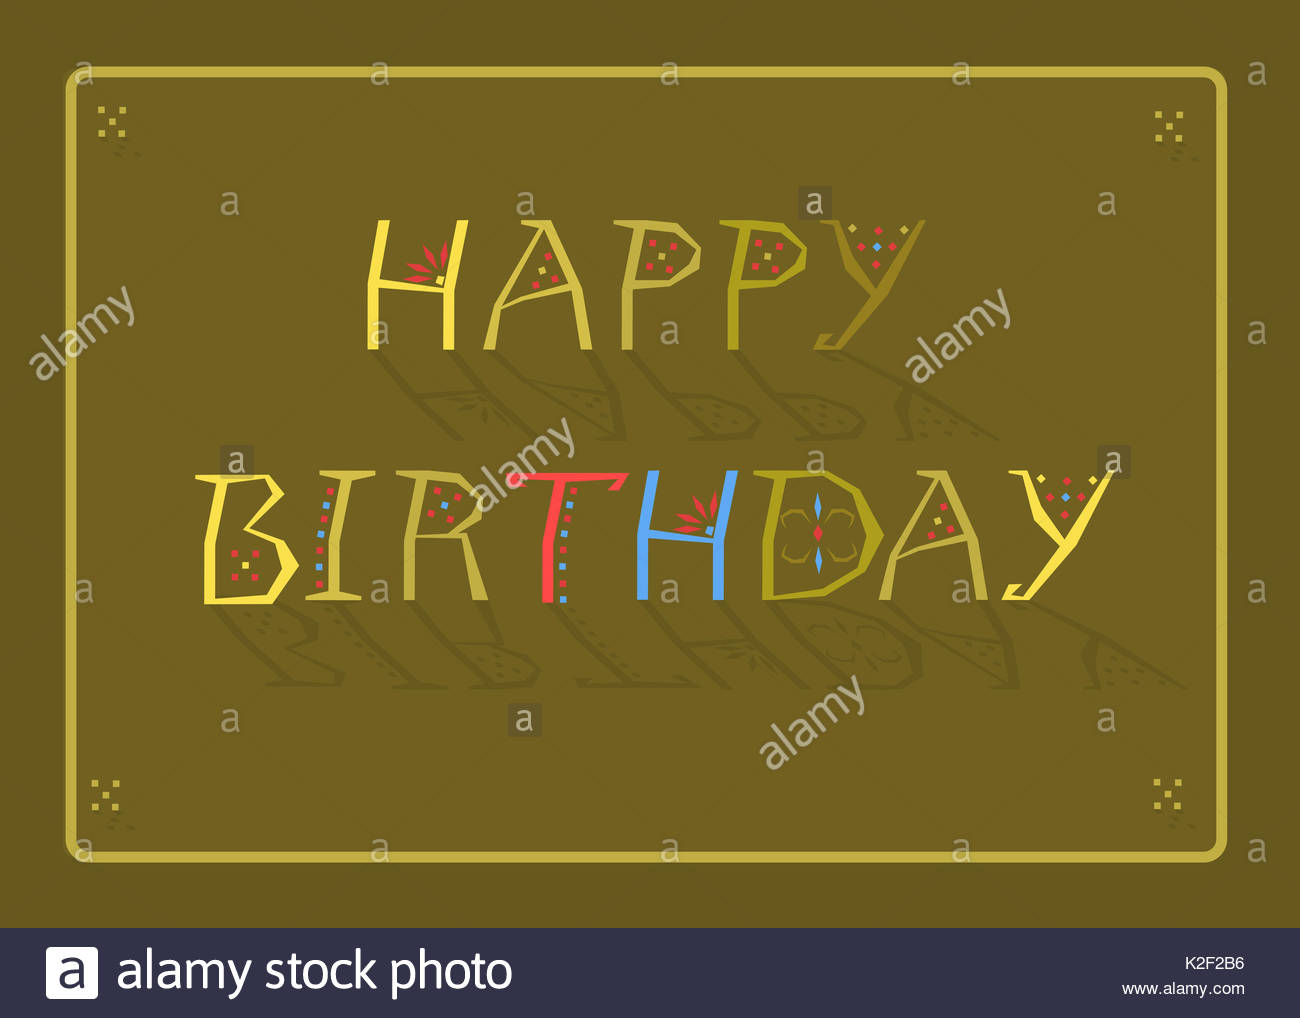 happy birthday inscription by artistic font green background yellow frame yellow letters with geometric decor letter t is red letter h is blue